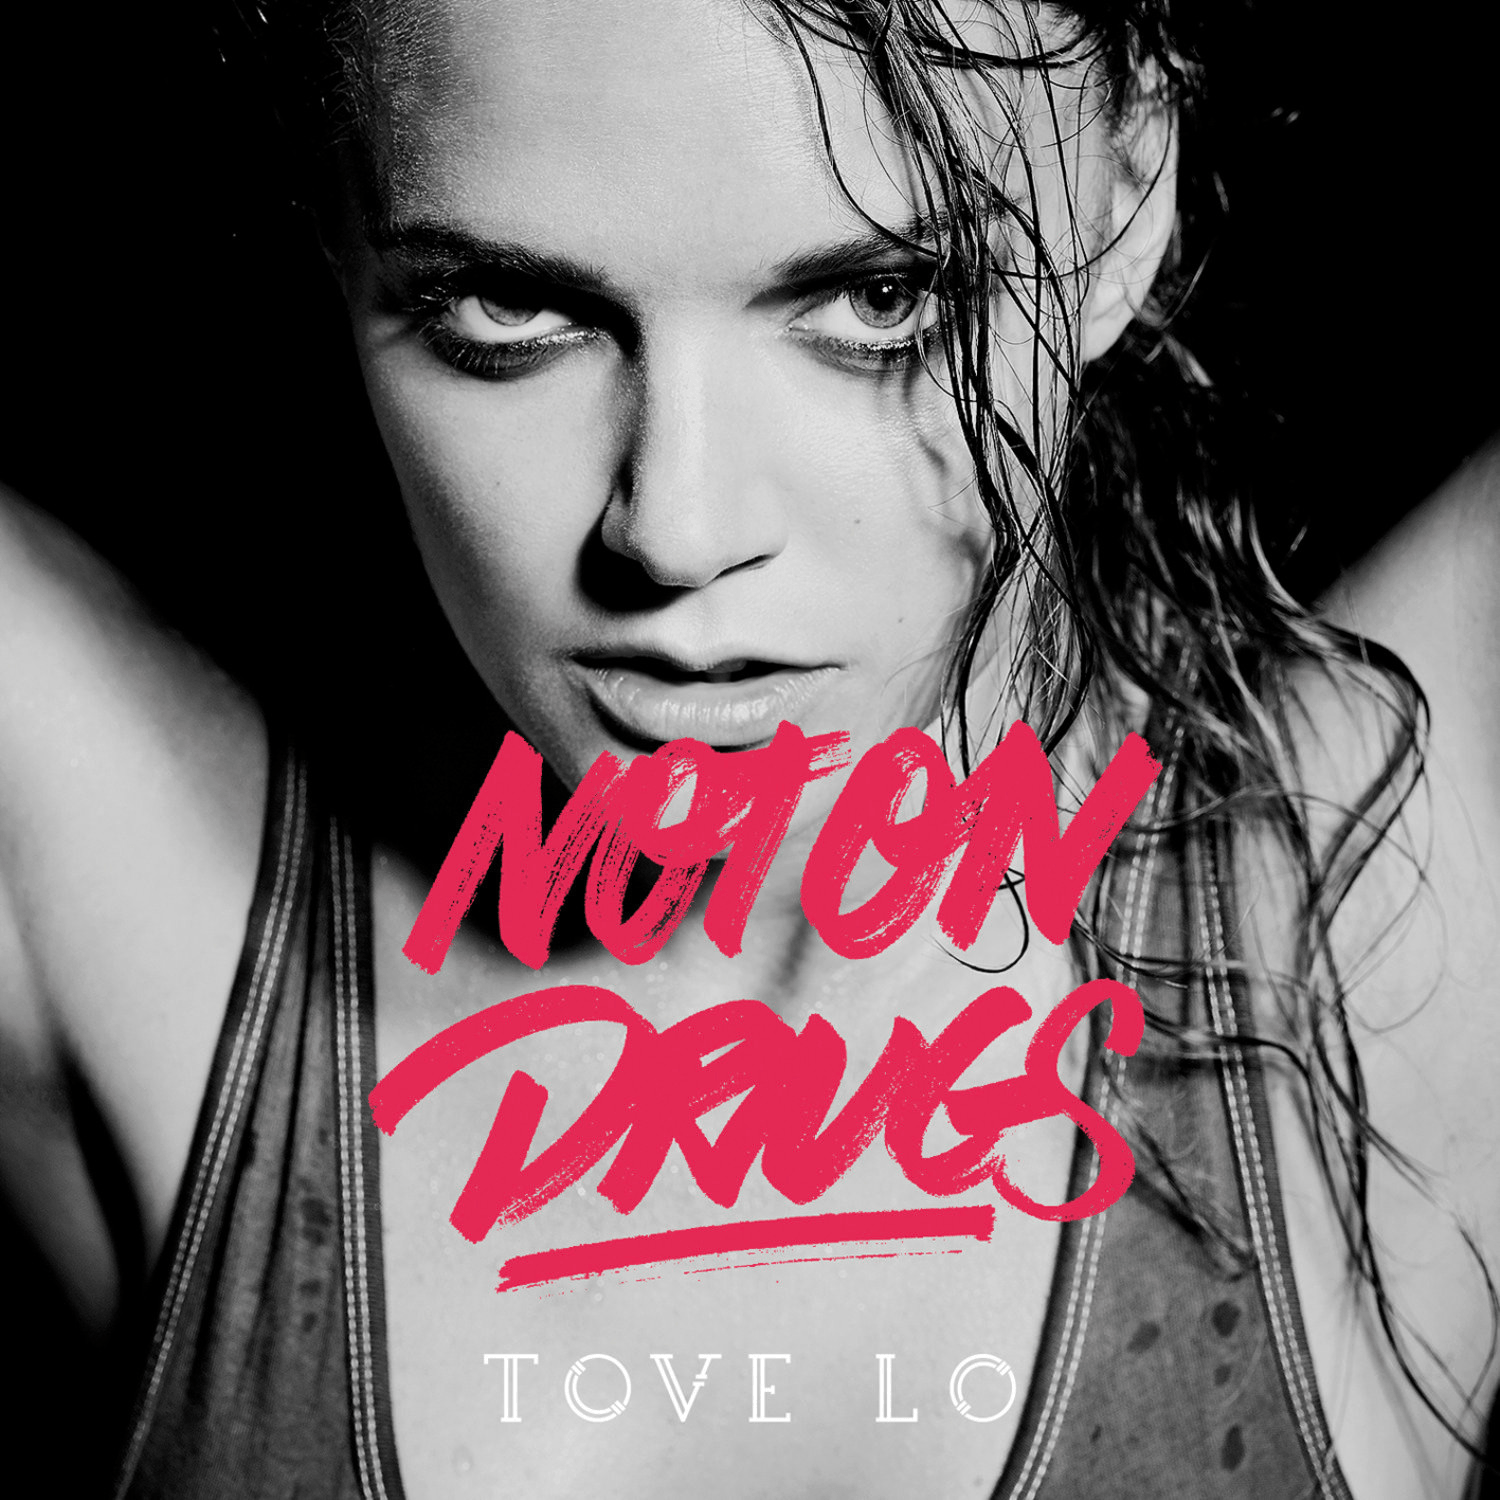 Tove-Lo-Not-On-Drugs-2014-1500x1500